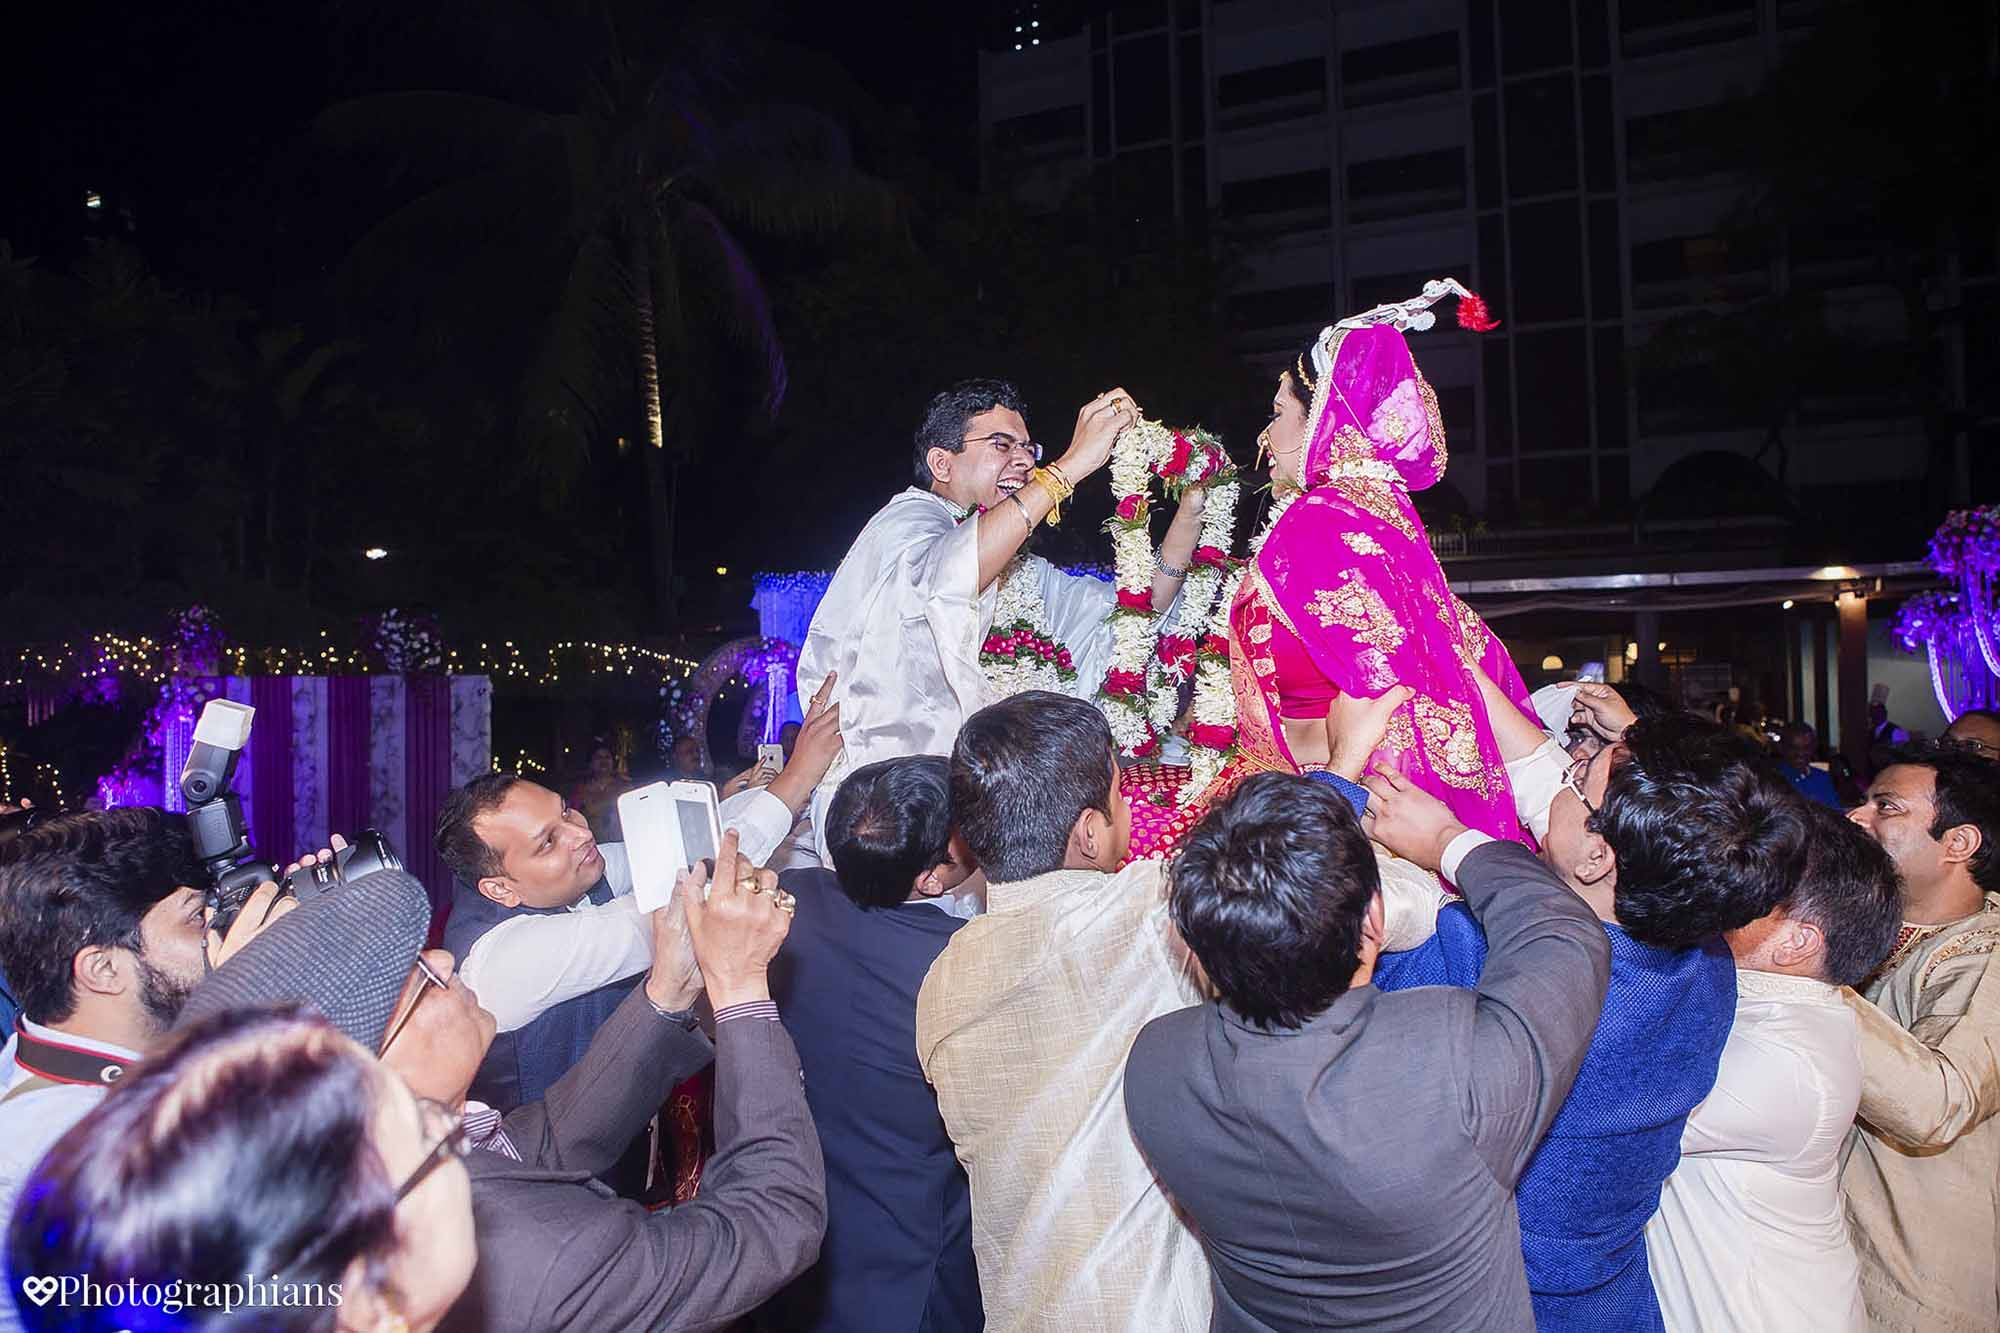 Bengali_Wedding_Photography_Kolkata_Photographians_126